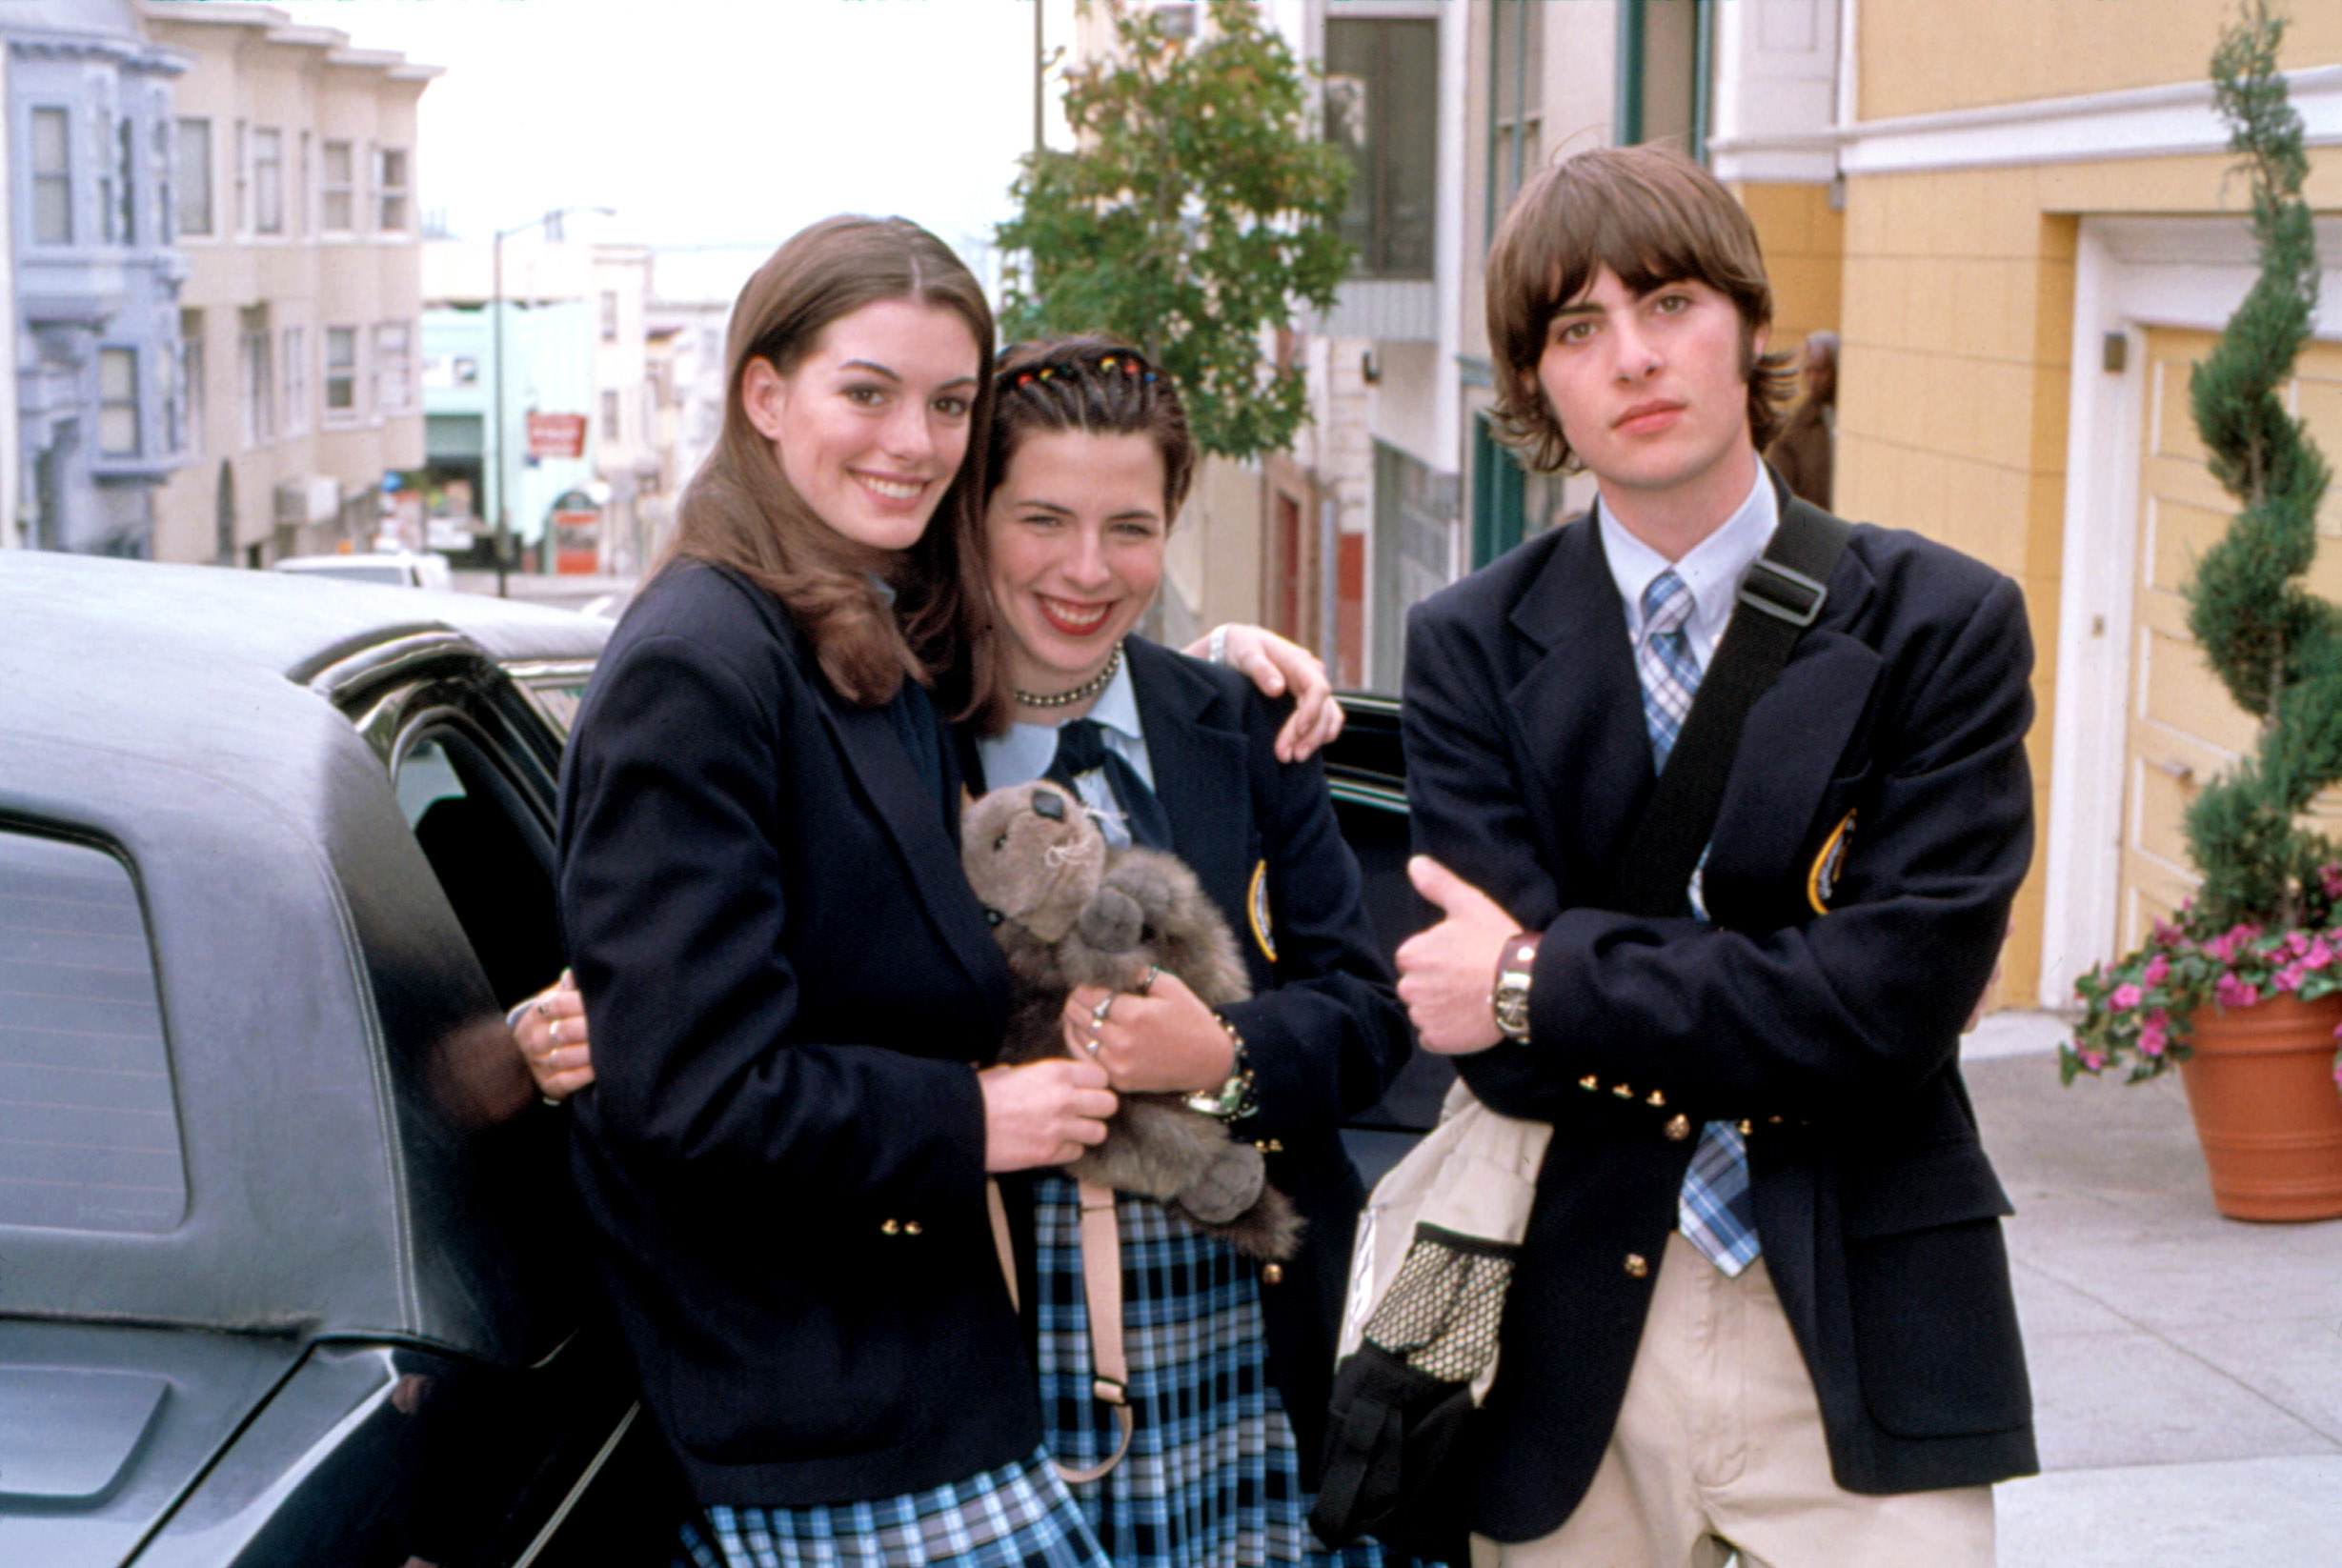 Mia, Lily, and Michael in the movie outside the limo